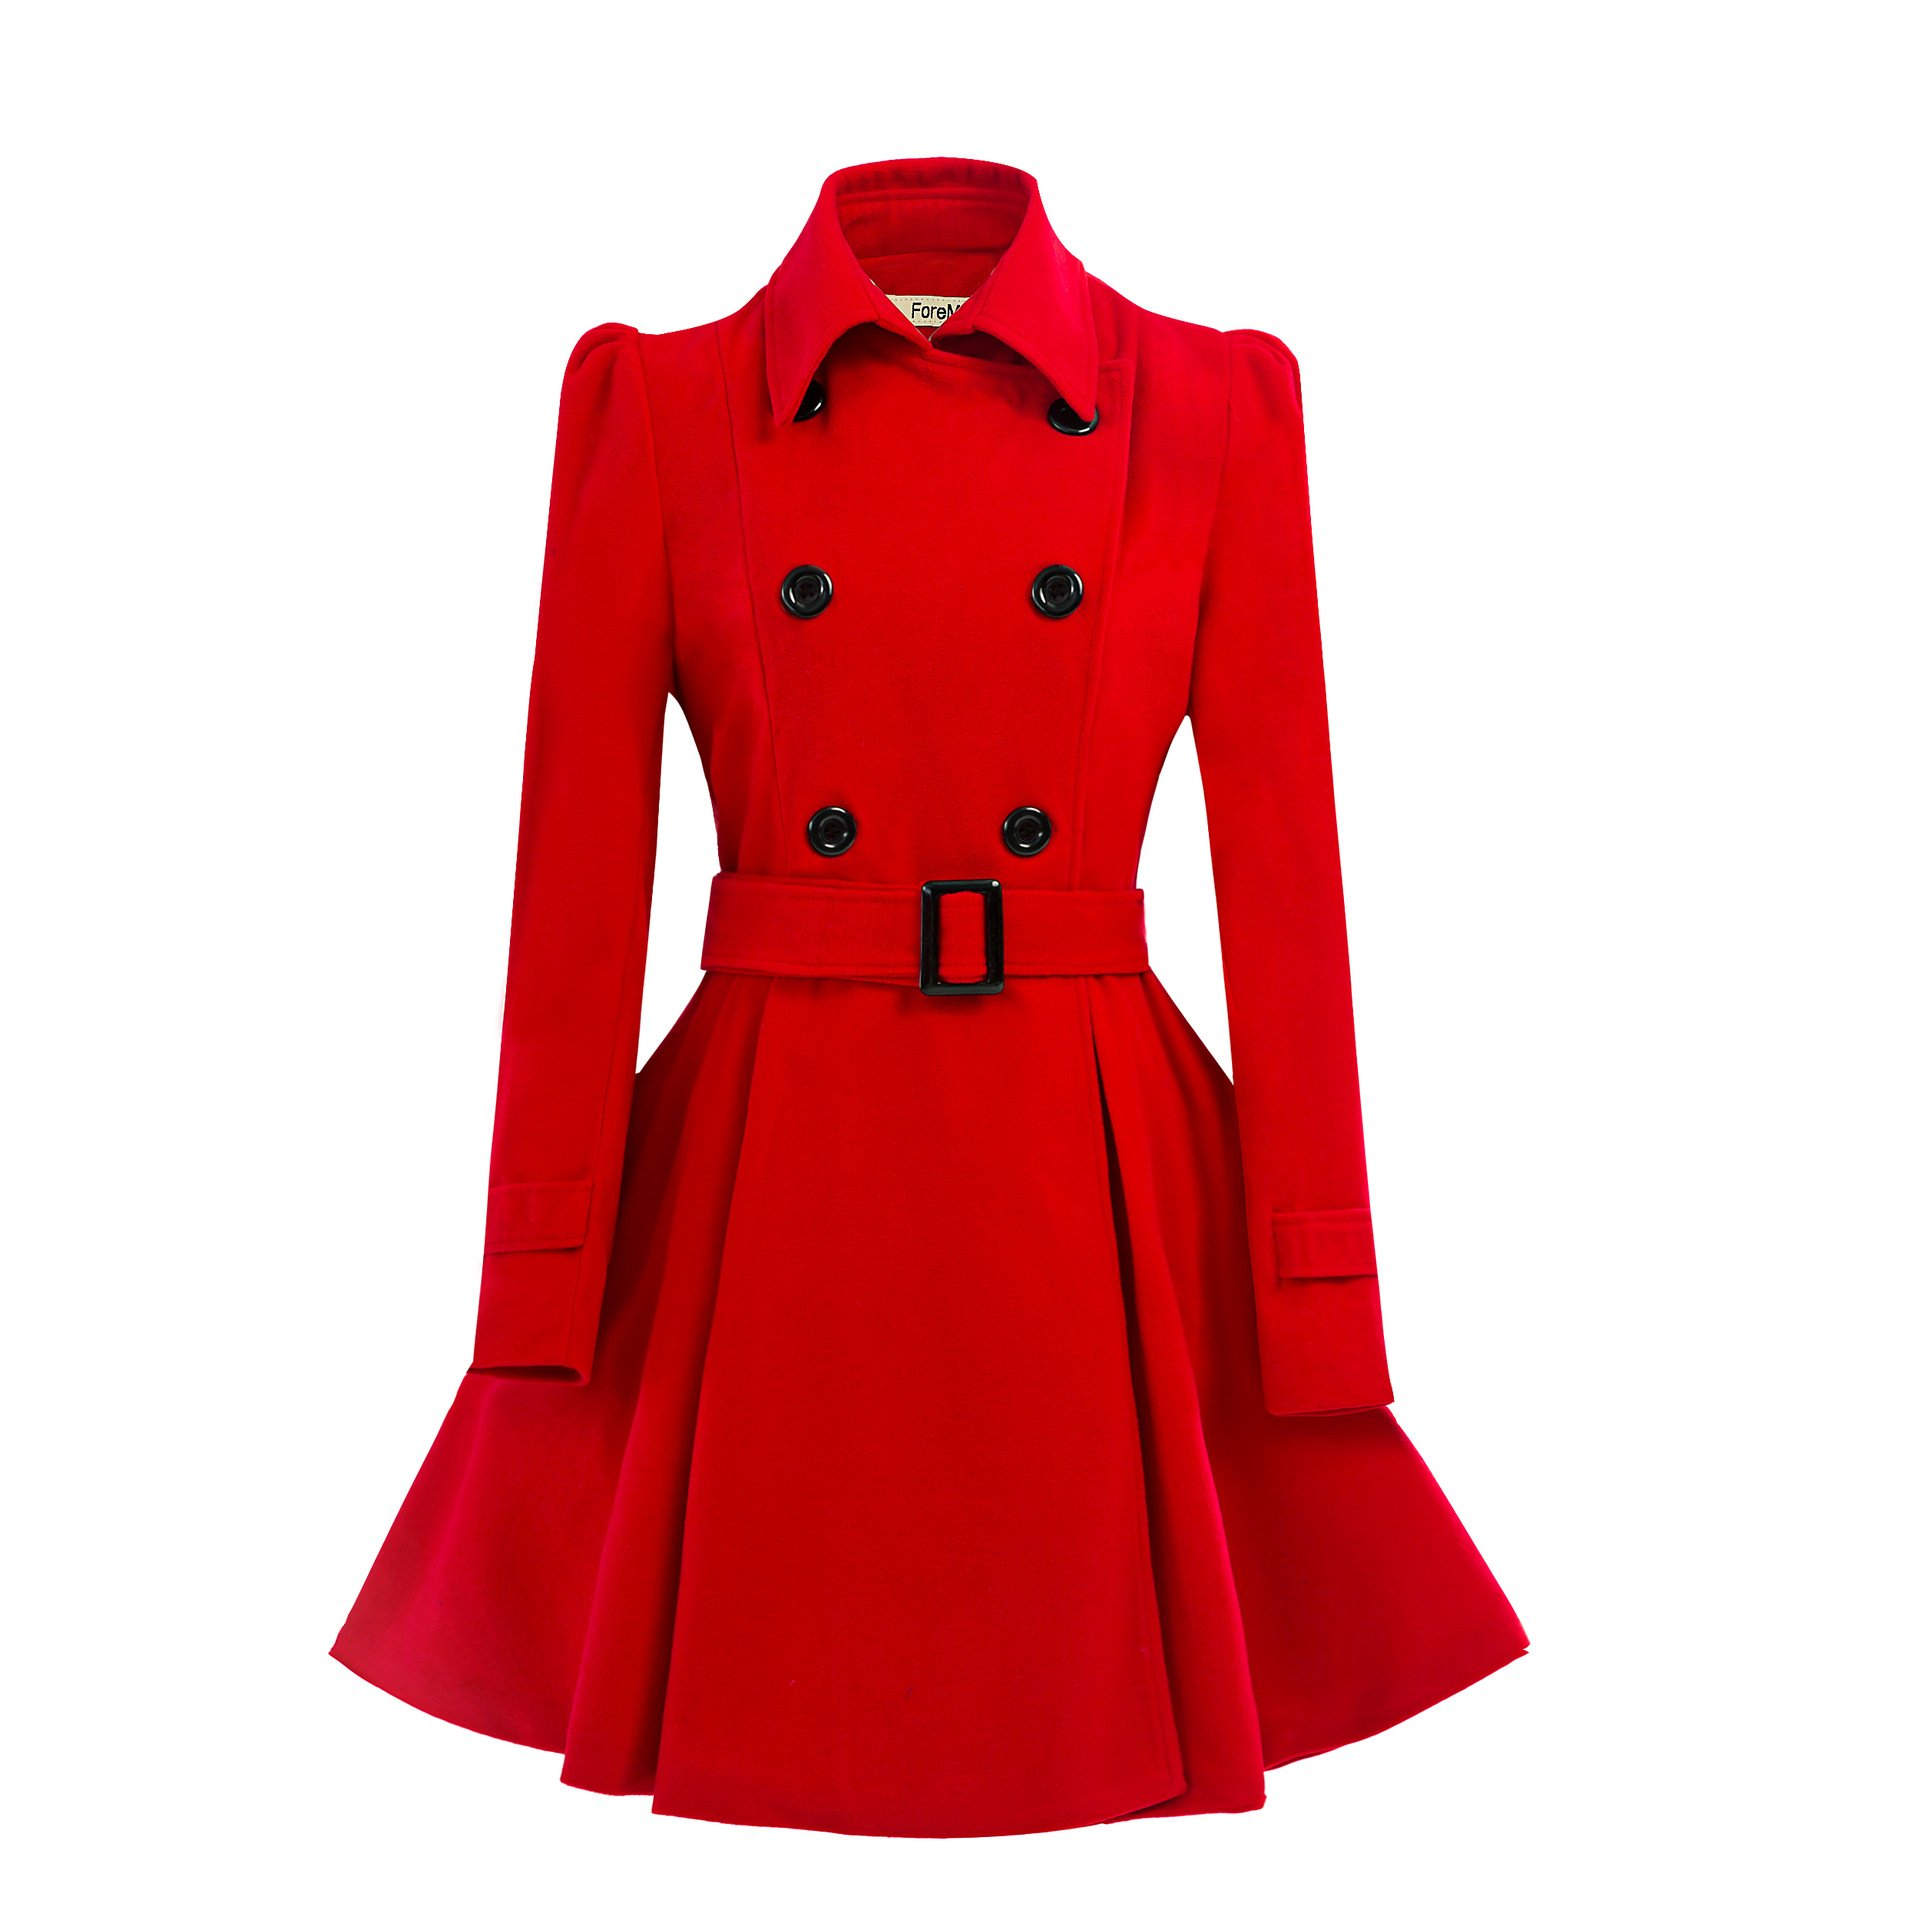 ForeMode Women Double Breasted Trench Coat with Belt Buckle Spring Mid-Long Long Sleeve Casual Dresses Style Outwear(Red L)